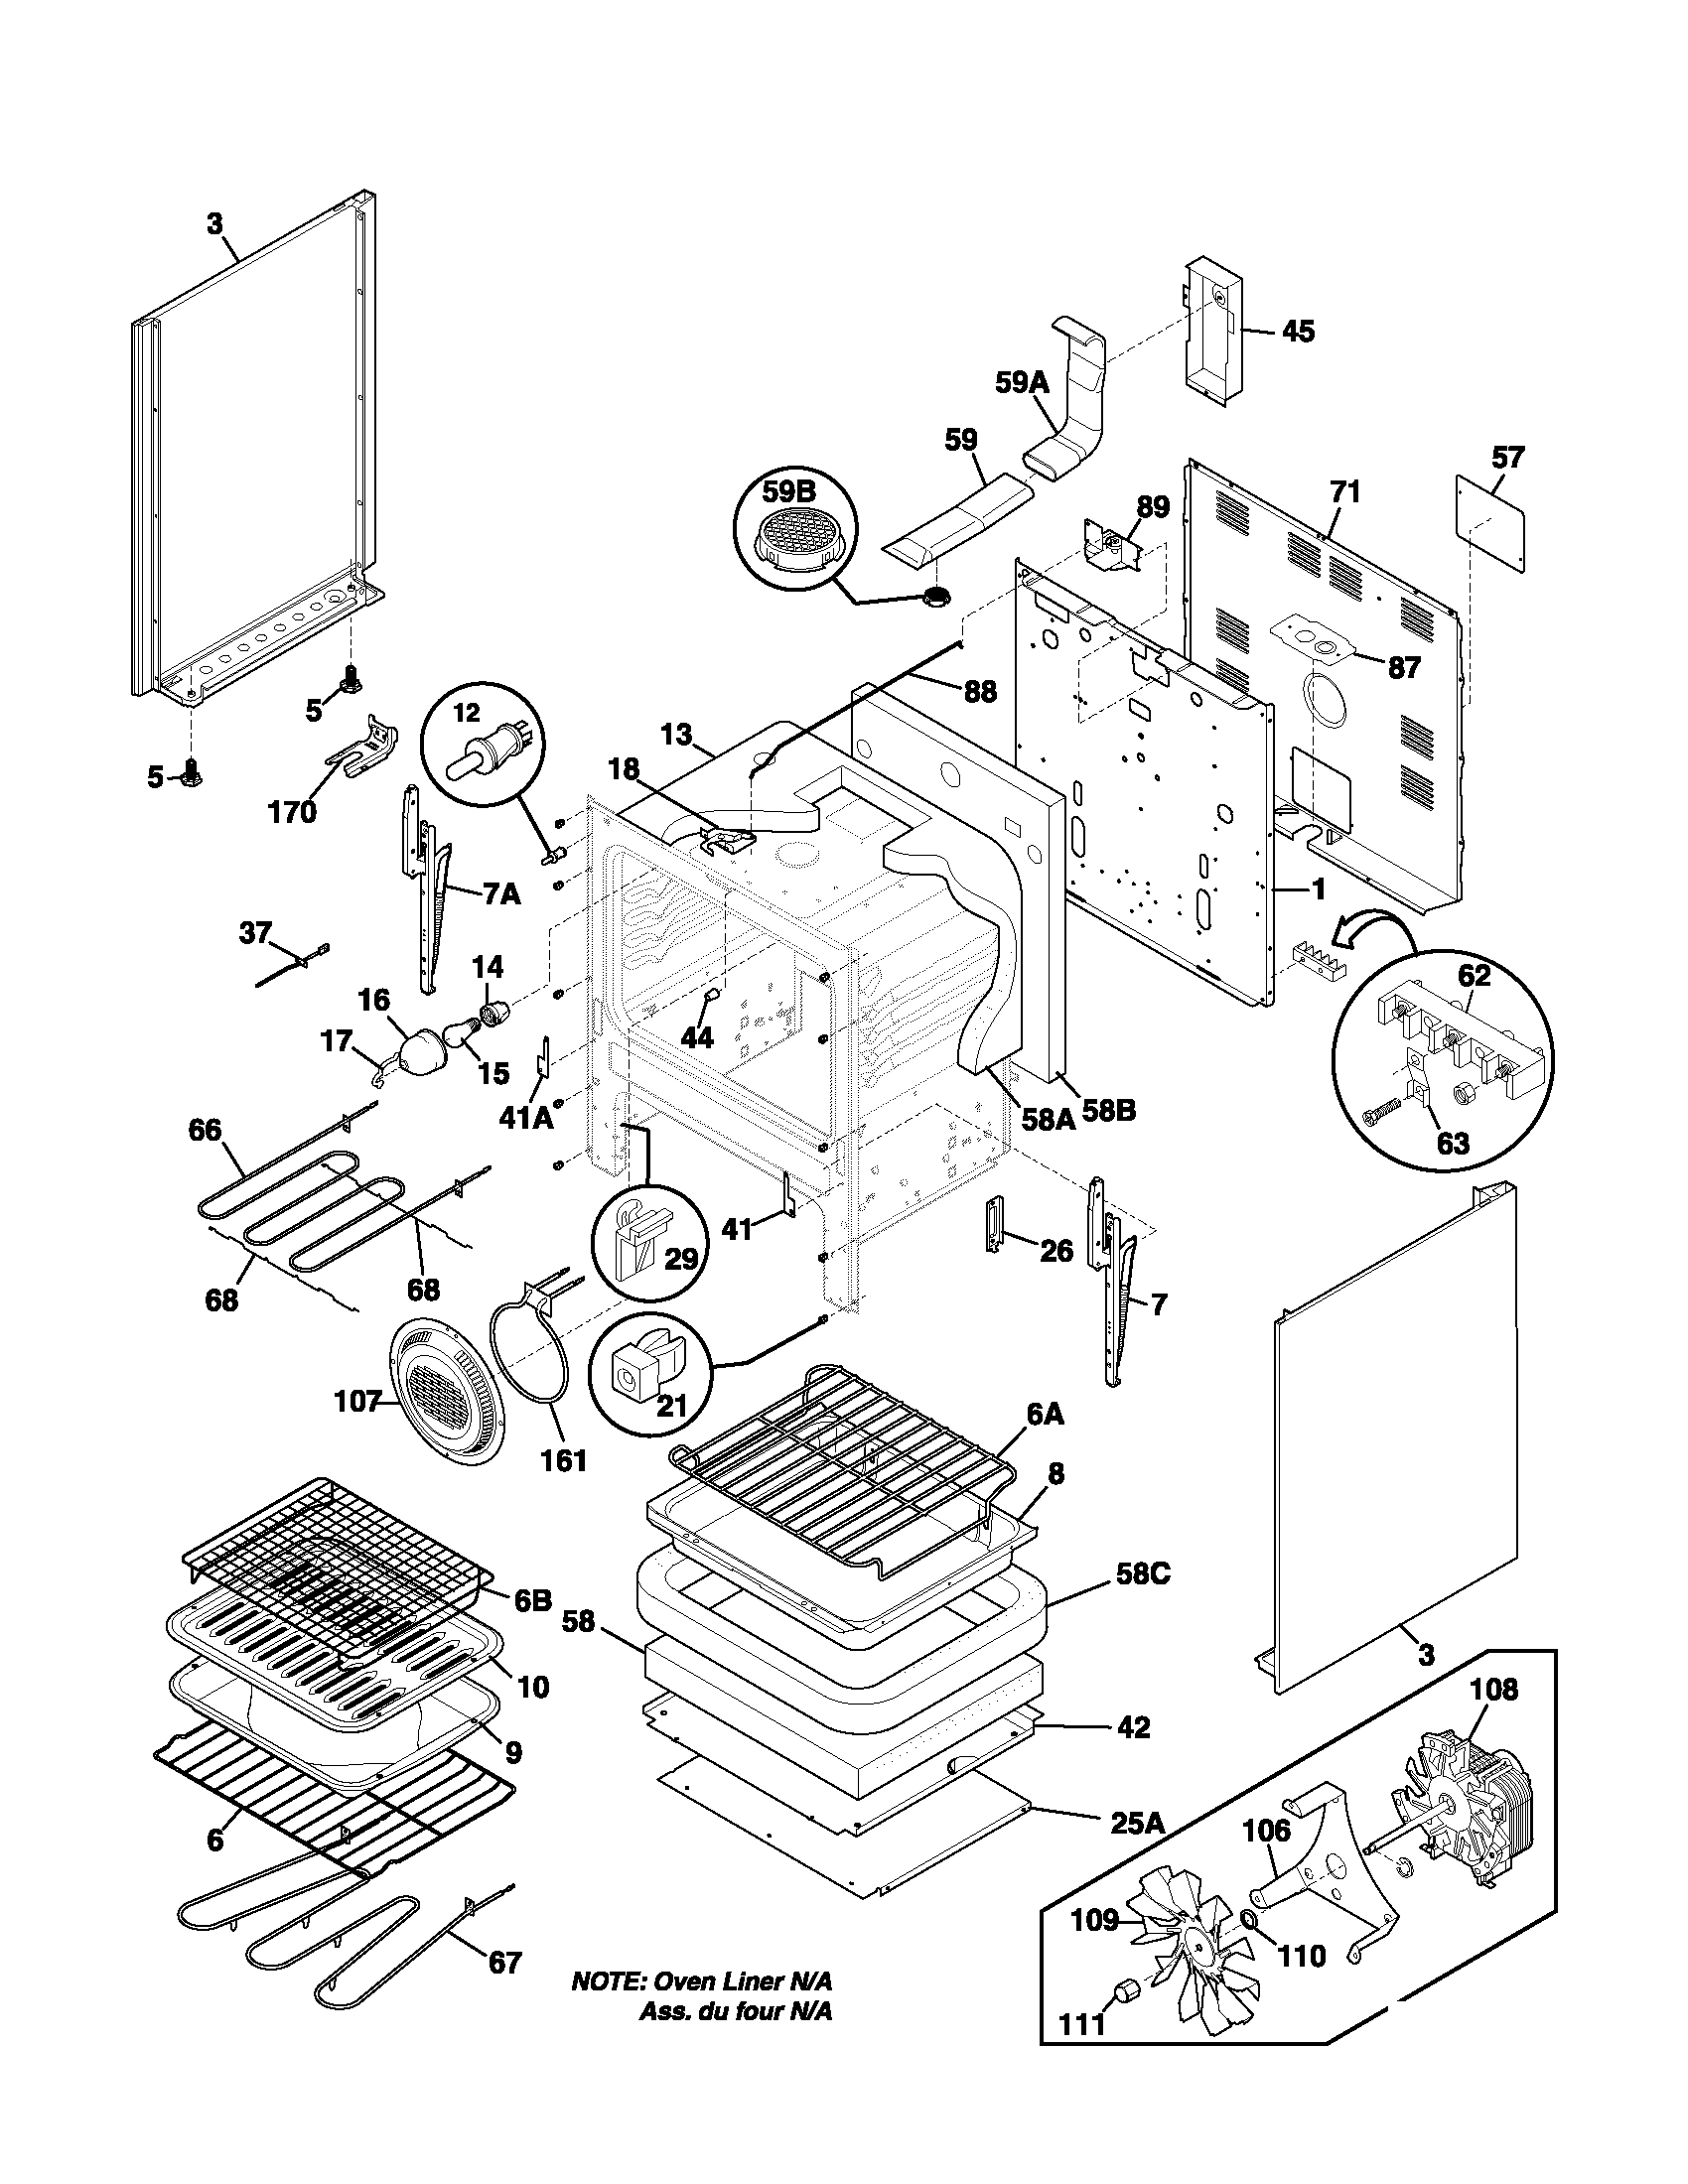 whirlpool electric range wiring diagram whirlpool whirlpool fefl88acc electric range timer stove clocks and on whirlpool electric range wiring diagram